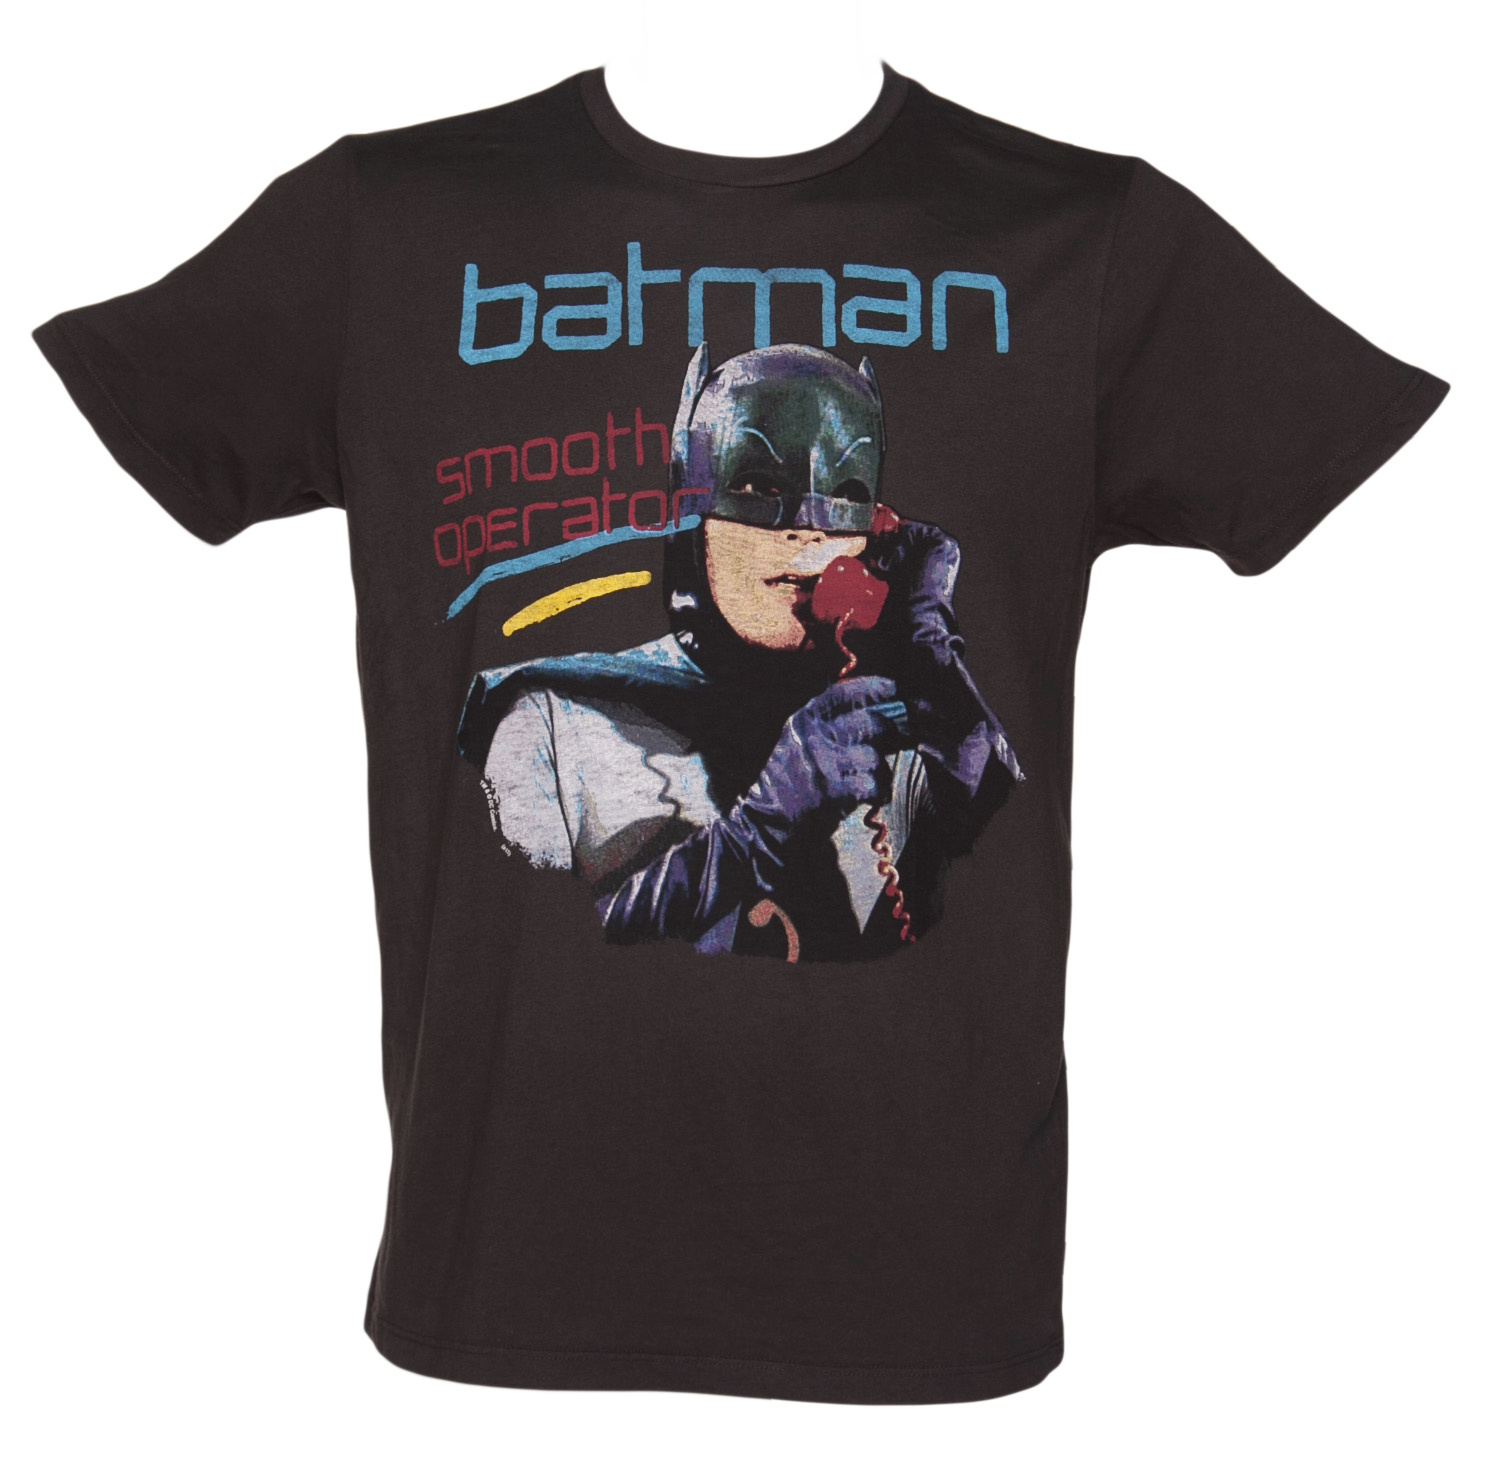 Junk Food Mens Black Smooth Operator Batman T-Shirt from product image